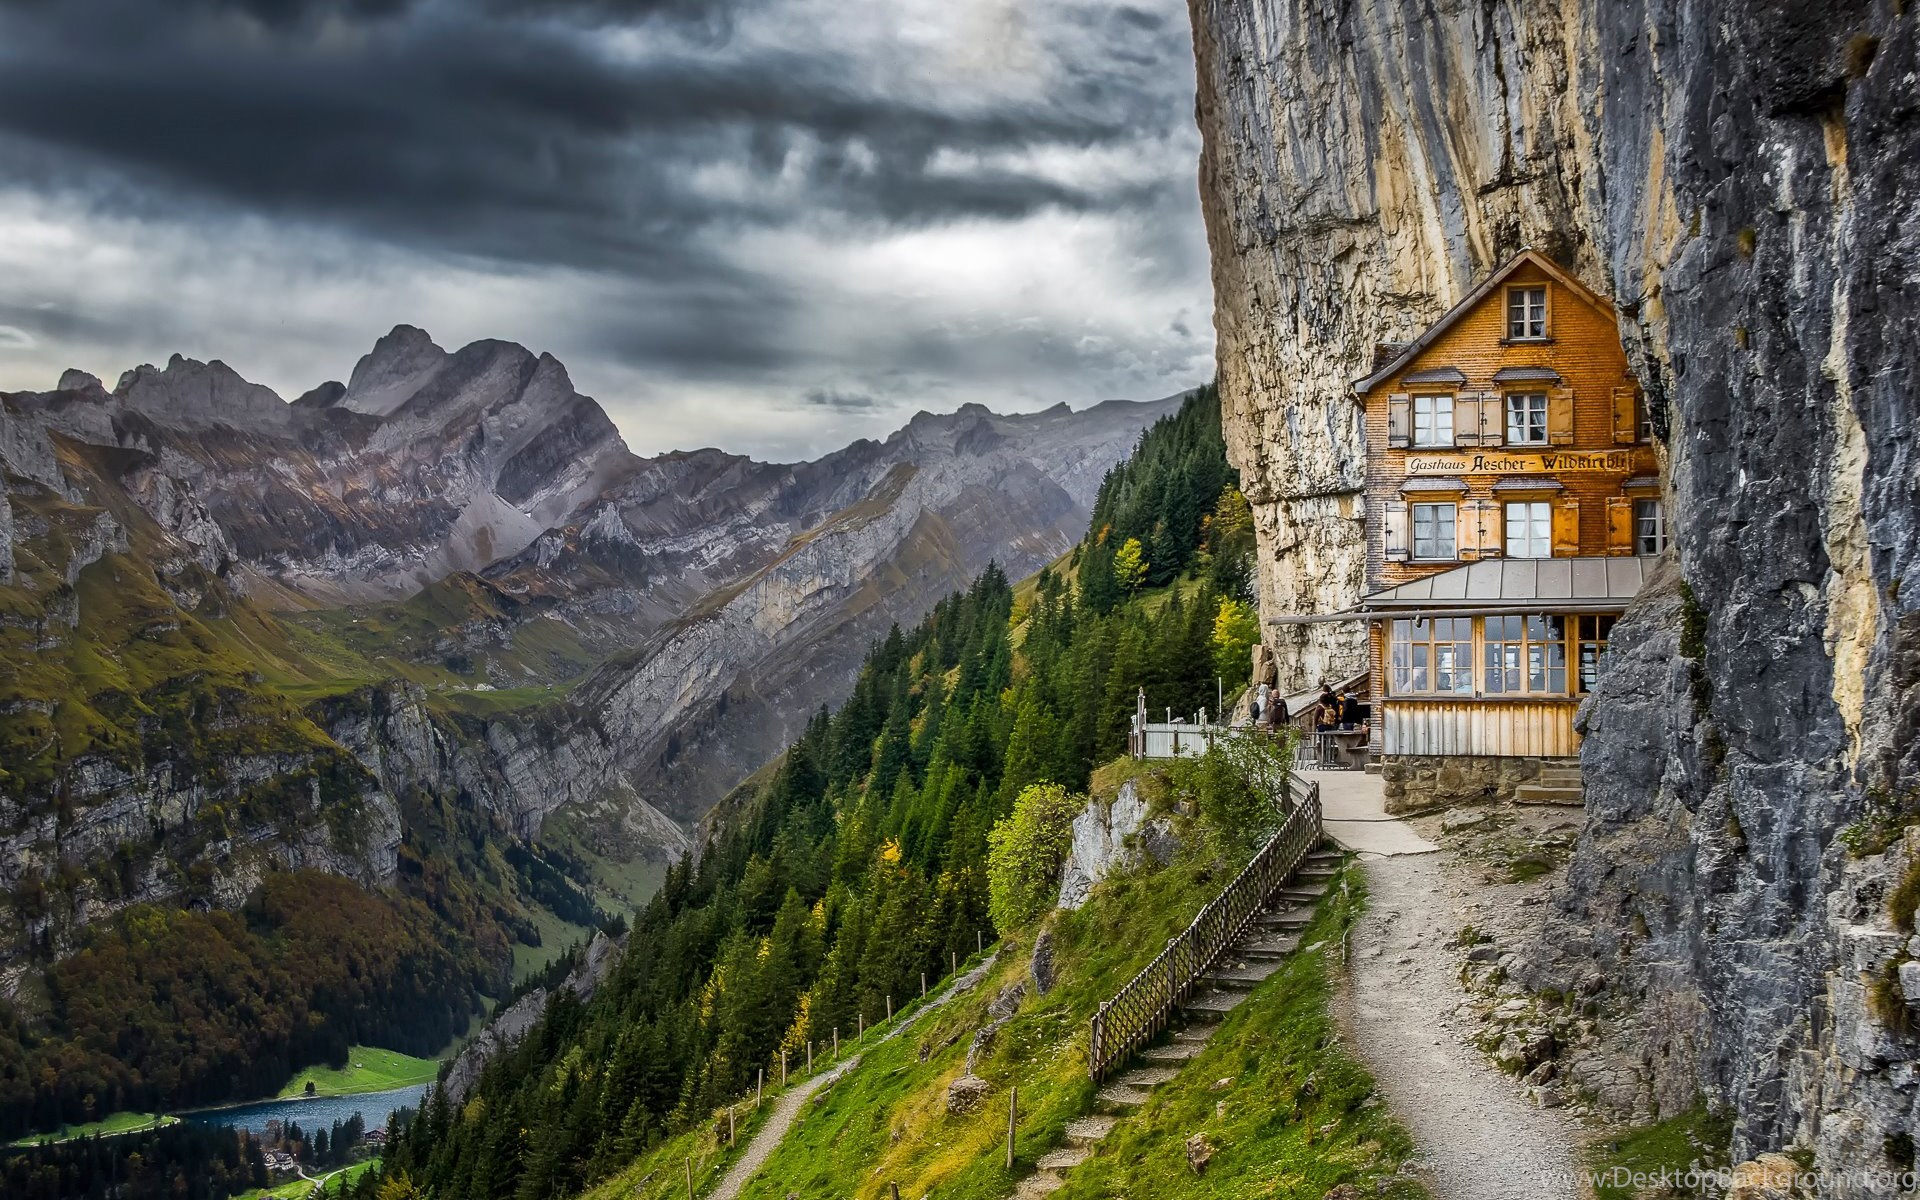 Boarding house in swiss alps wallpapers desktop background - Swiss alps wallpaper ...